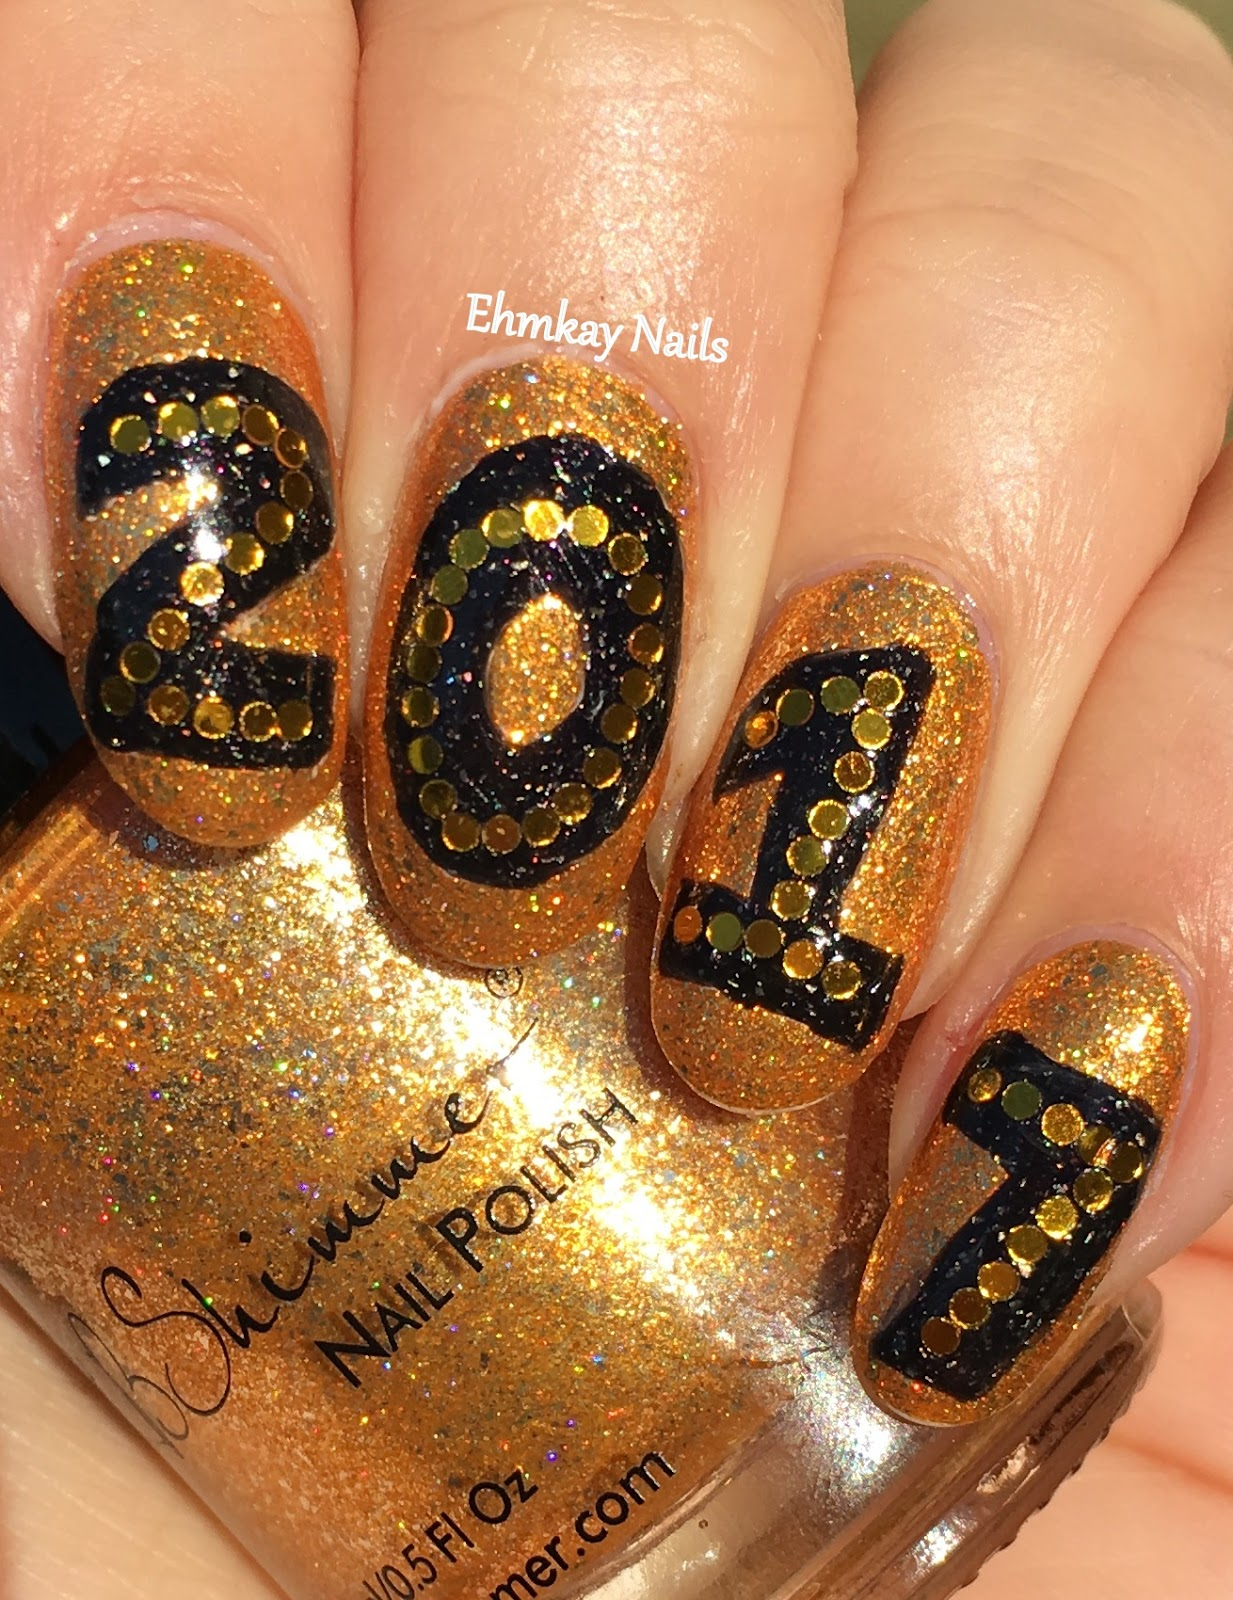 Ehmkay Nails: Welcome To 2017 Nail Art